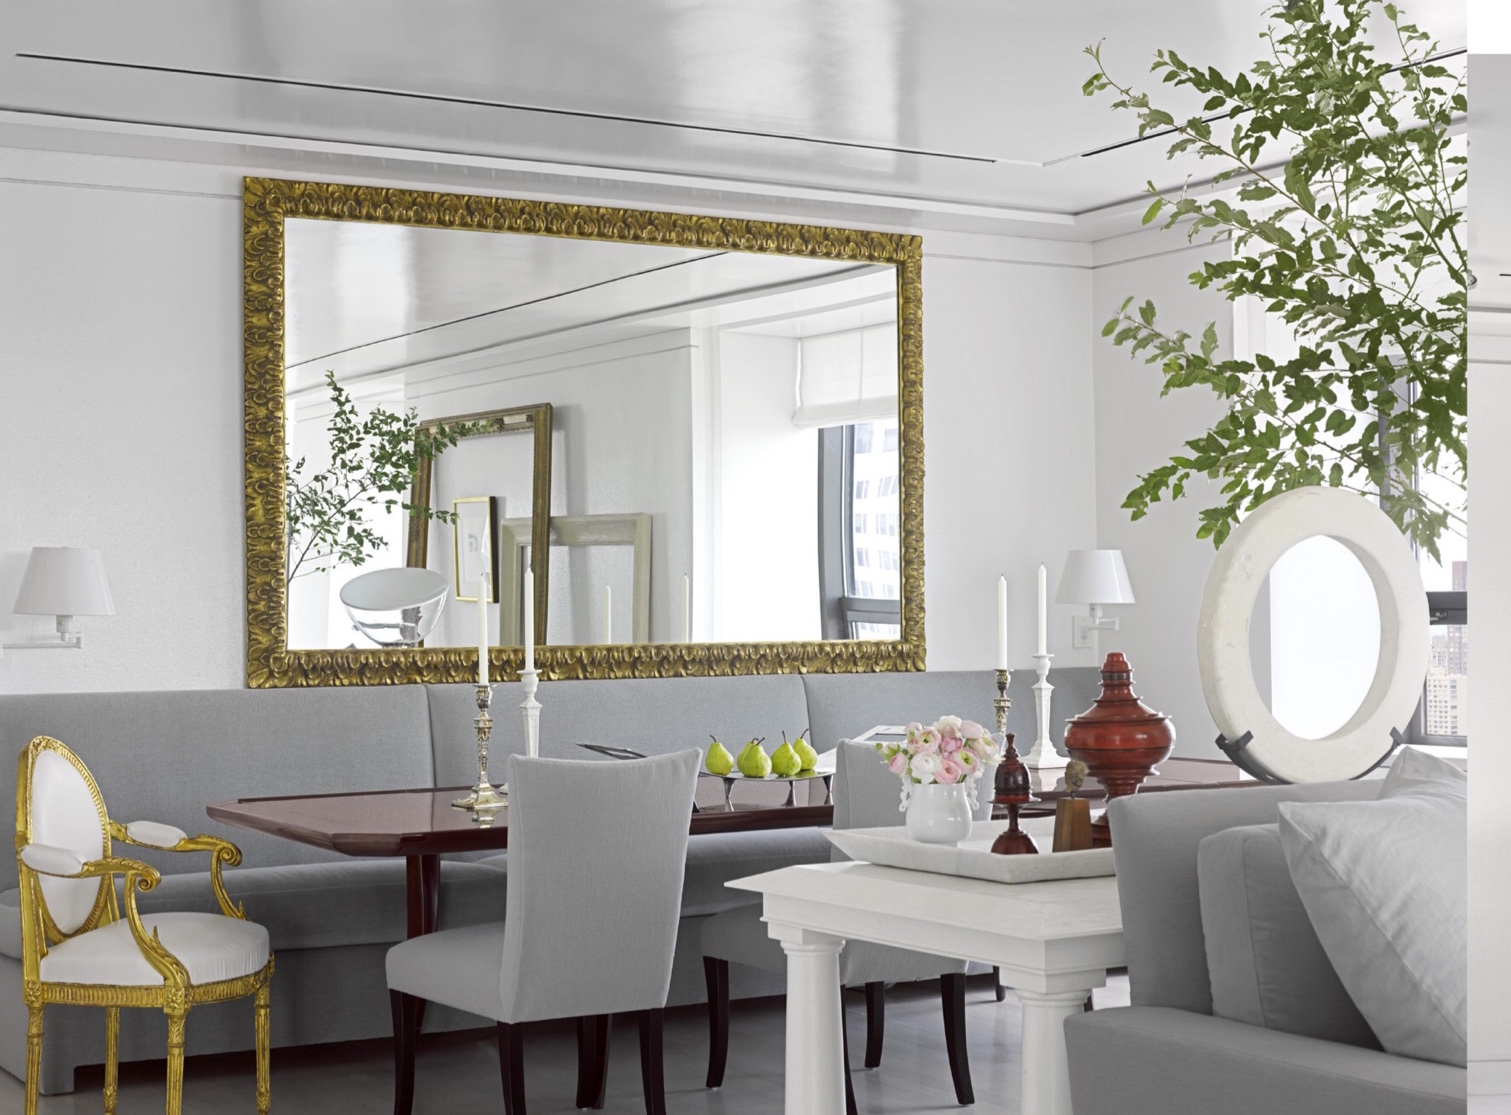 Splendid sass vicente wolf design in manhattan for Ann wolf interior decoration